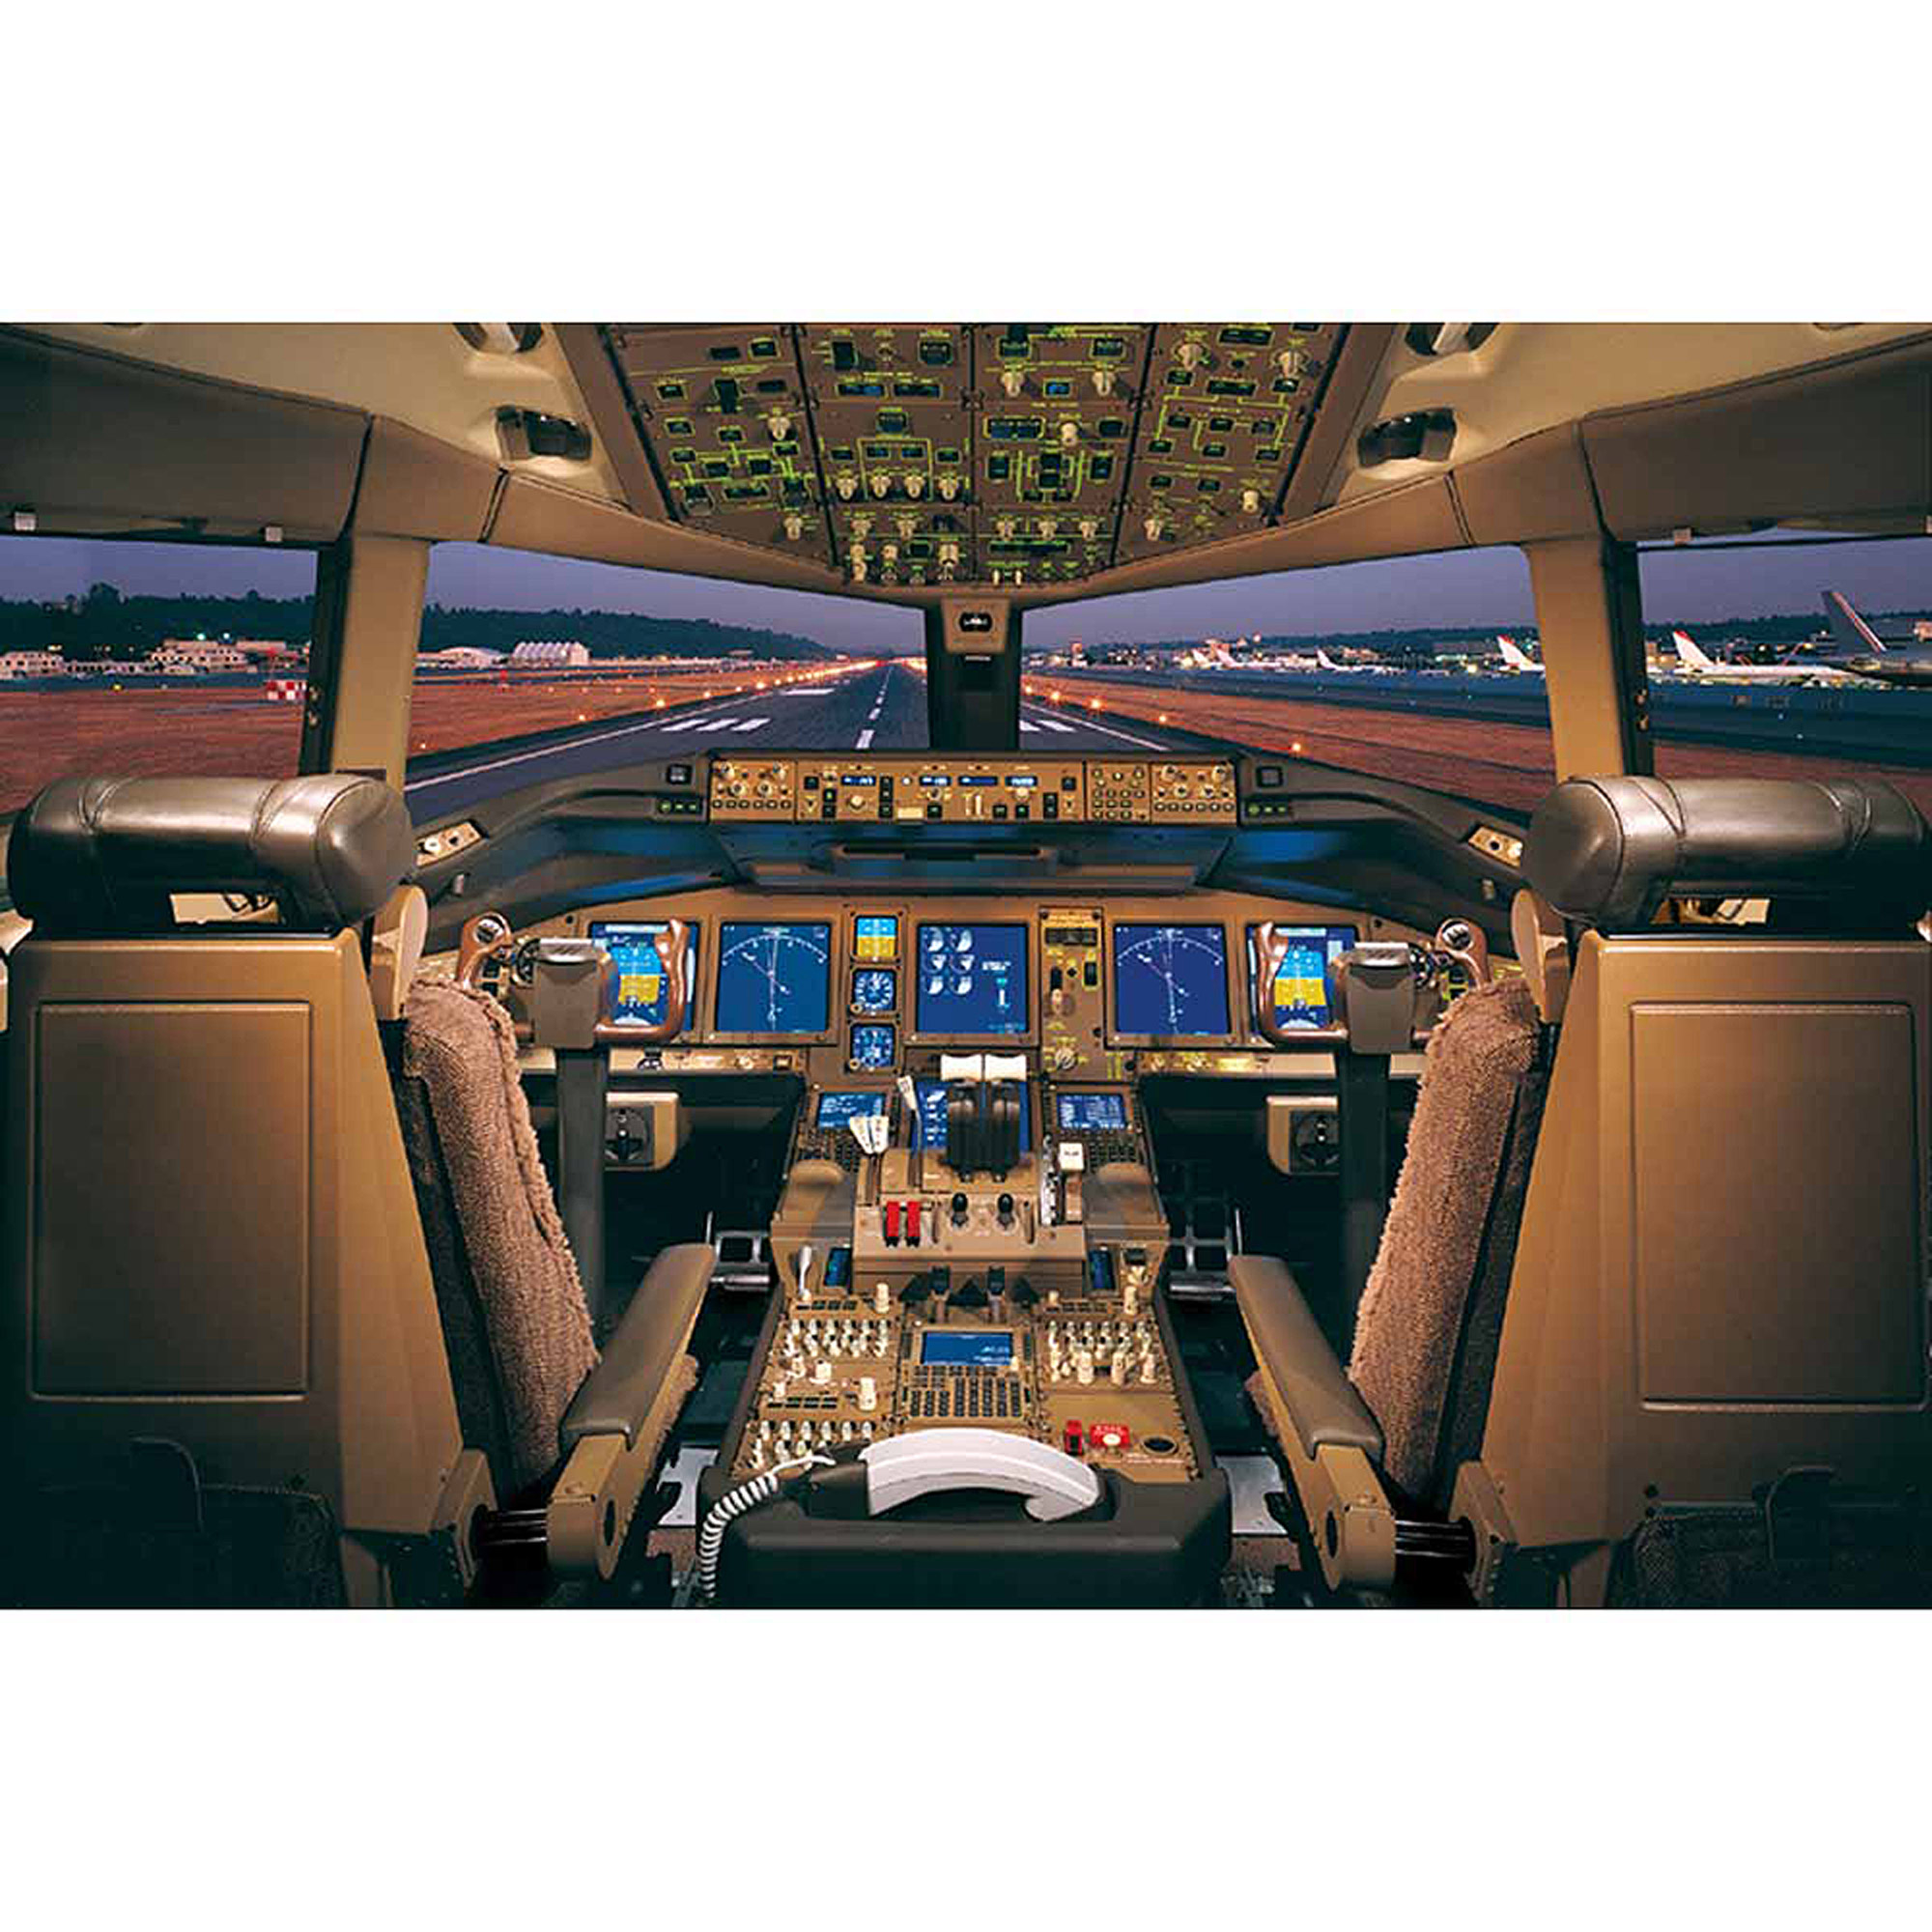 Airplane-Boeing777-200 Deck Photography Art